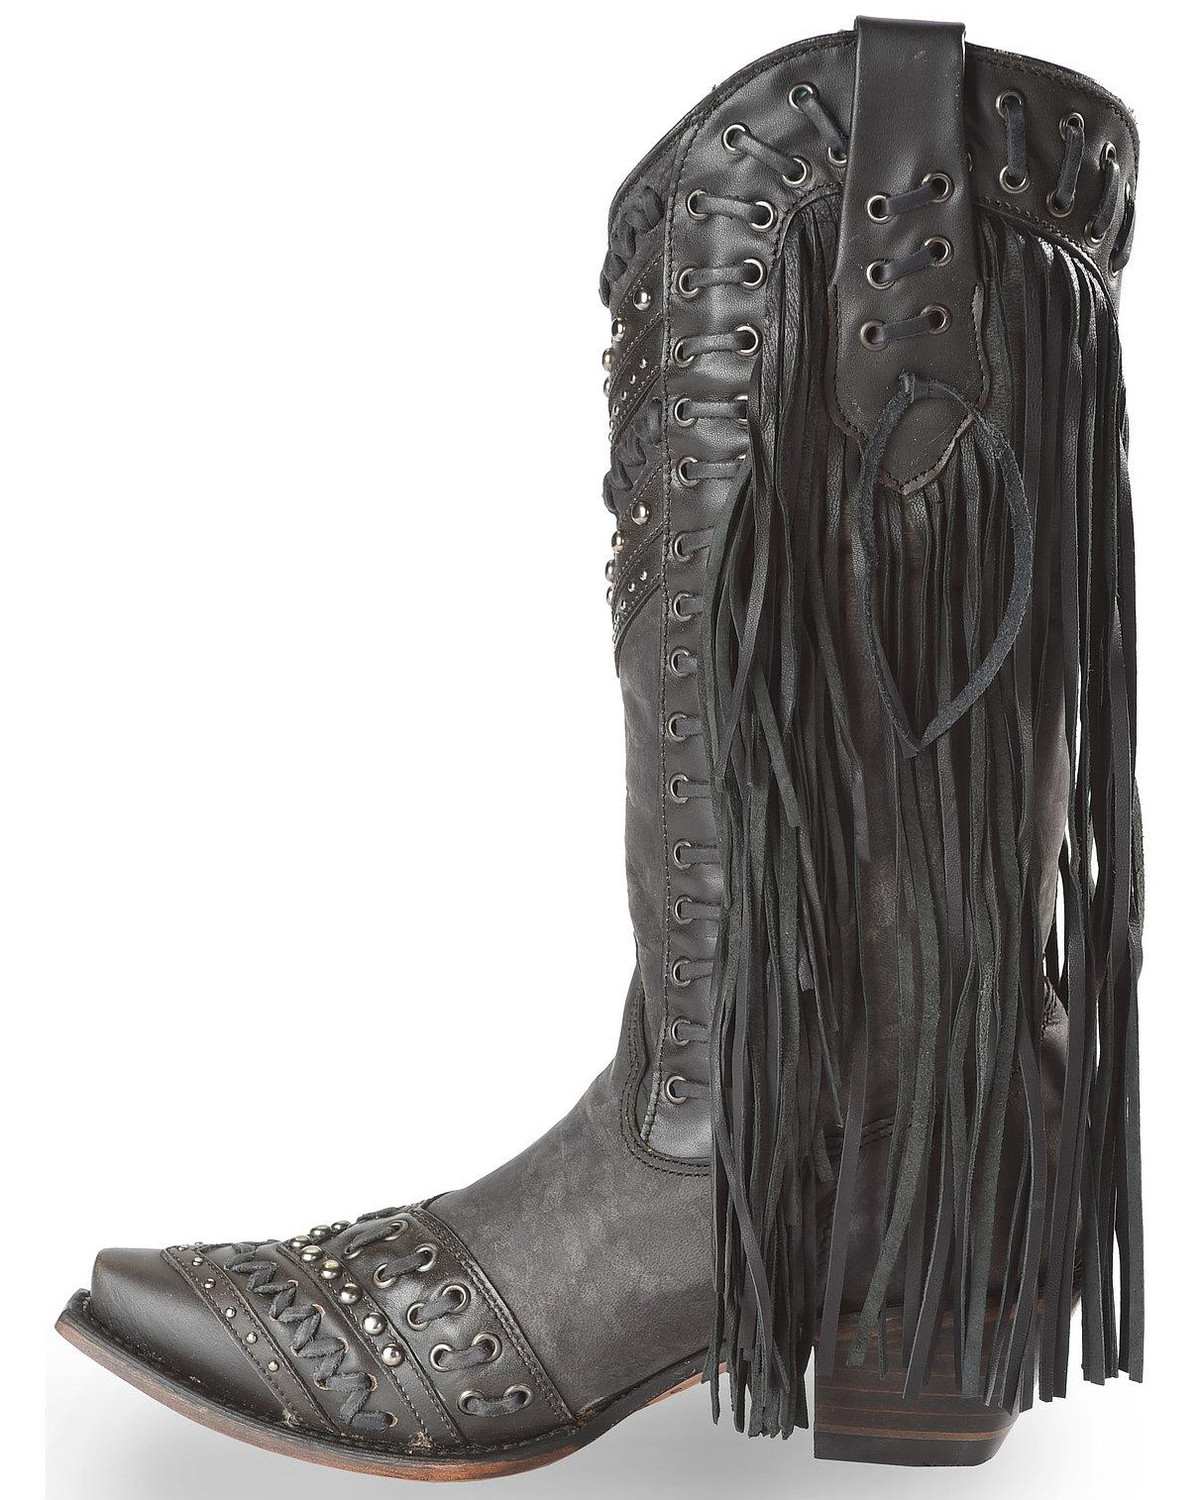 Corral Studded Side Fringe Cowgirl Boots - Snip Toe - Country ...